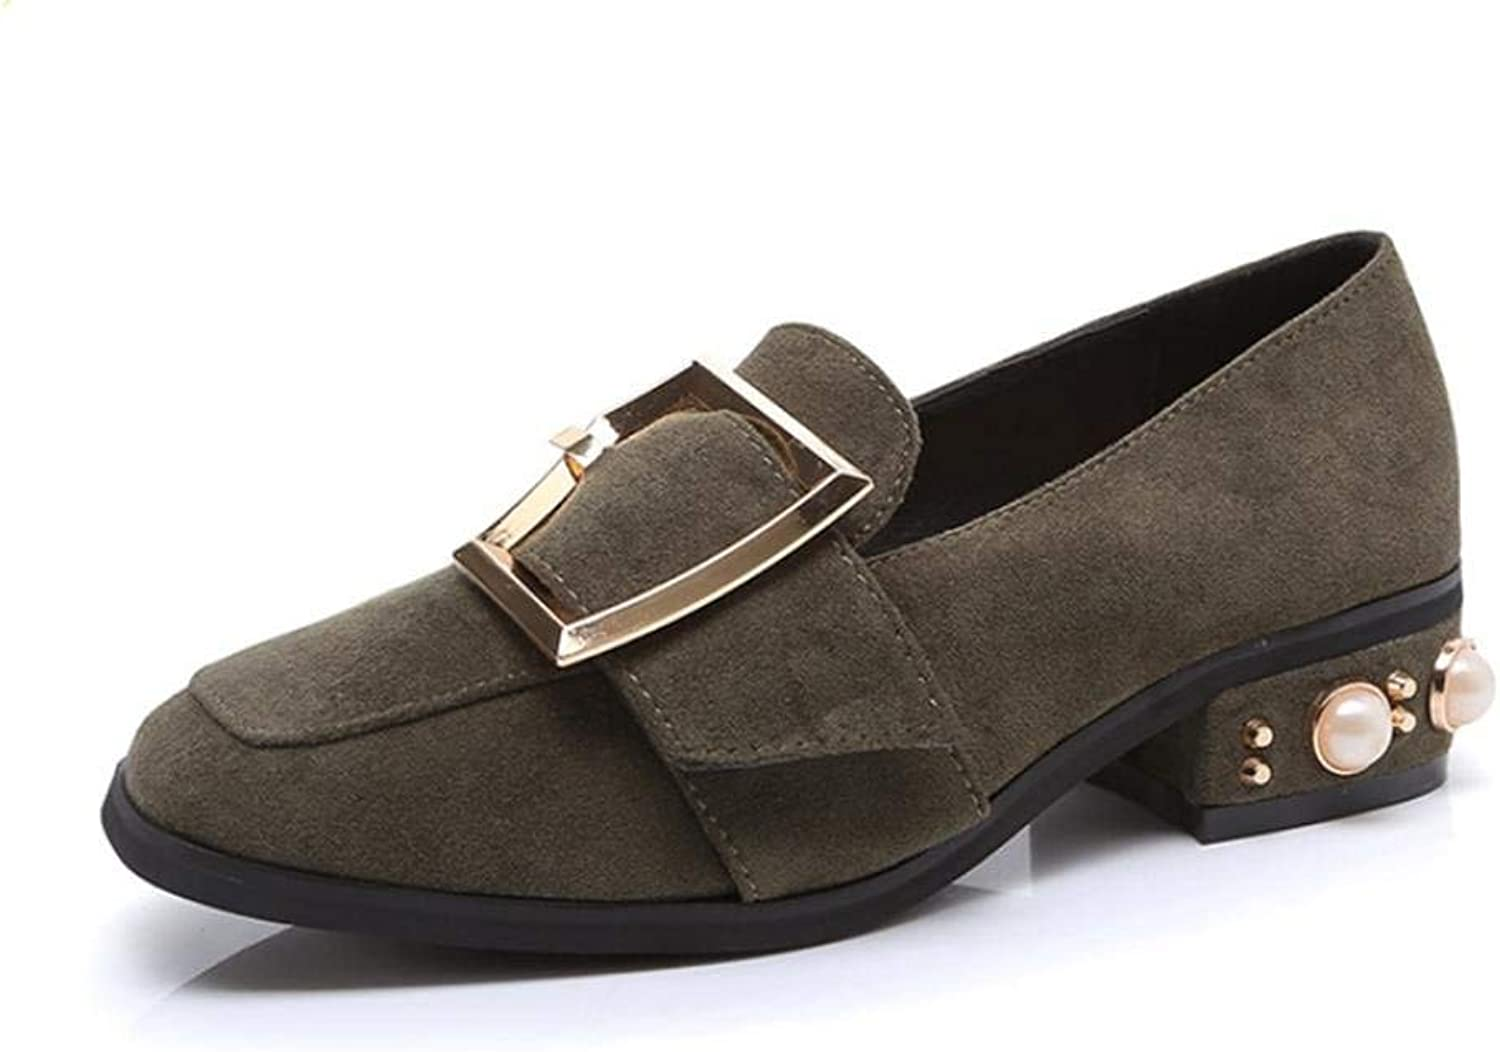 Lady Classic Square Head with a Single shoes Female Metal Buckle Pearl Low Heels Fashion Leisure Cosy Wild Casual Quality Super Elegant for Womens Mid Heel